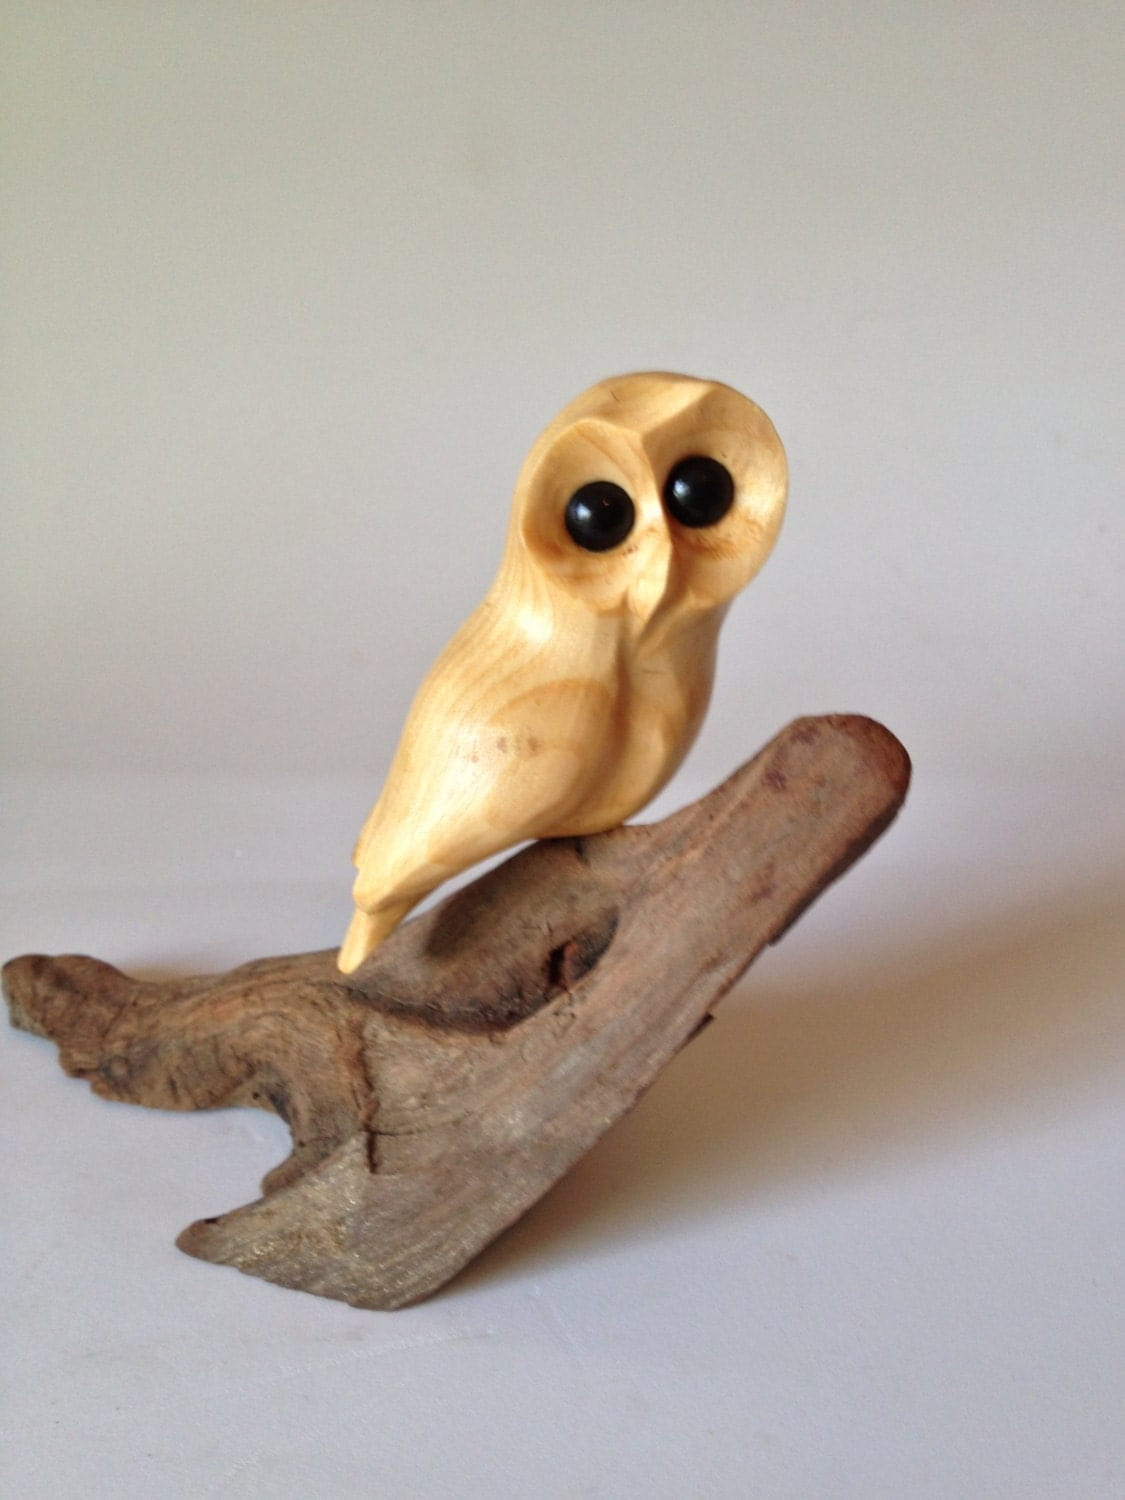 Owl art wood carving hand carved bird decor